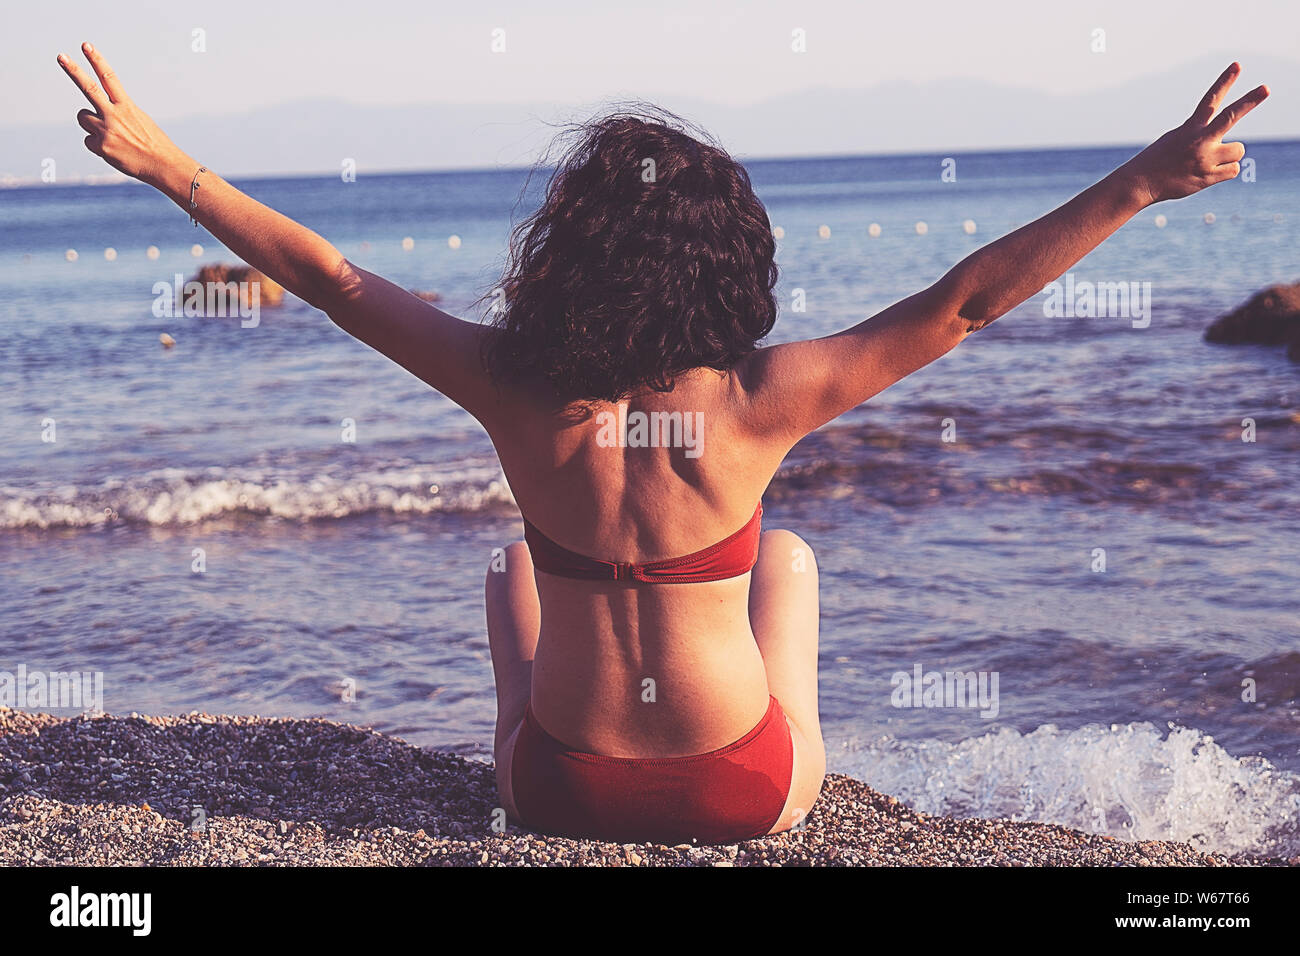 summer vacation, holidays, gesture, travel and people concept - young woman showing peace or victory sign on beach from back Stock Photo